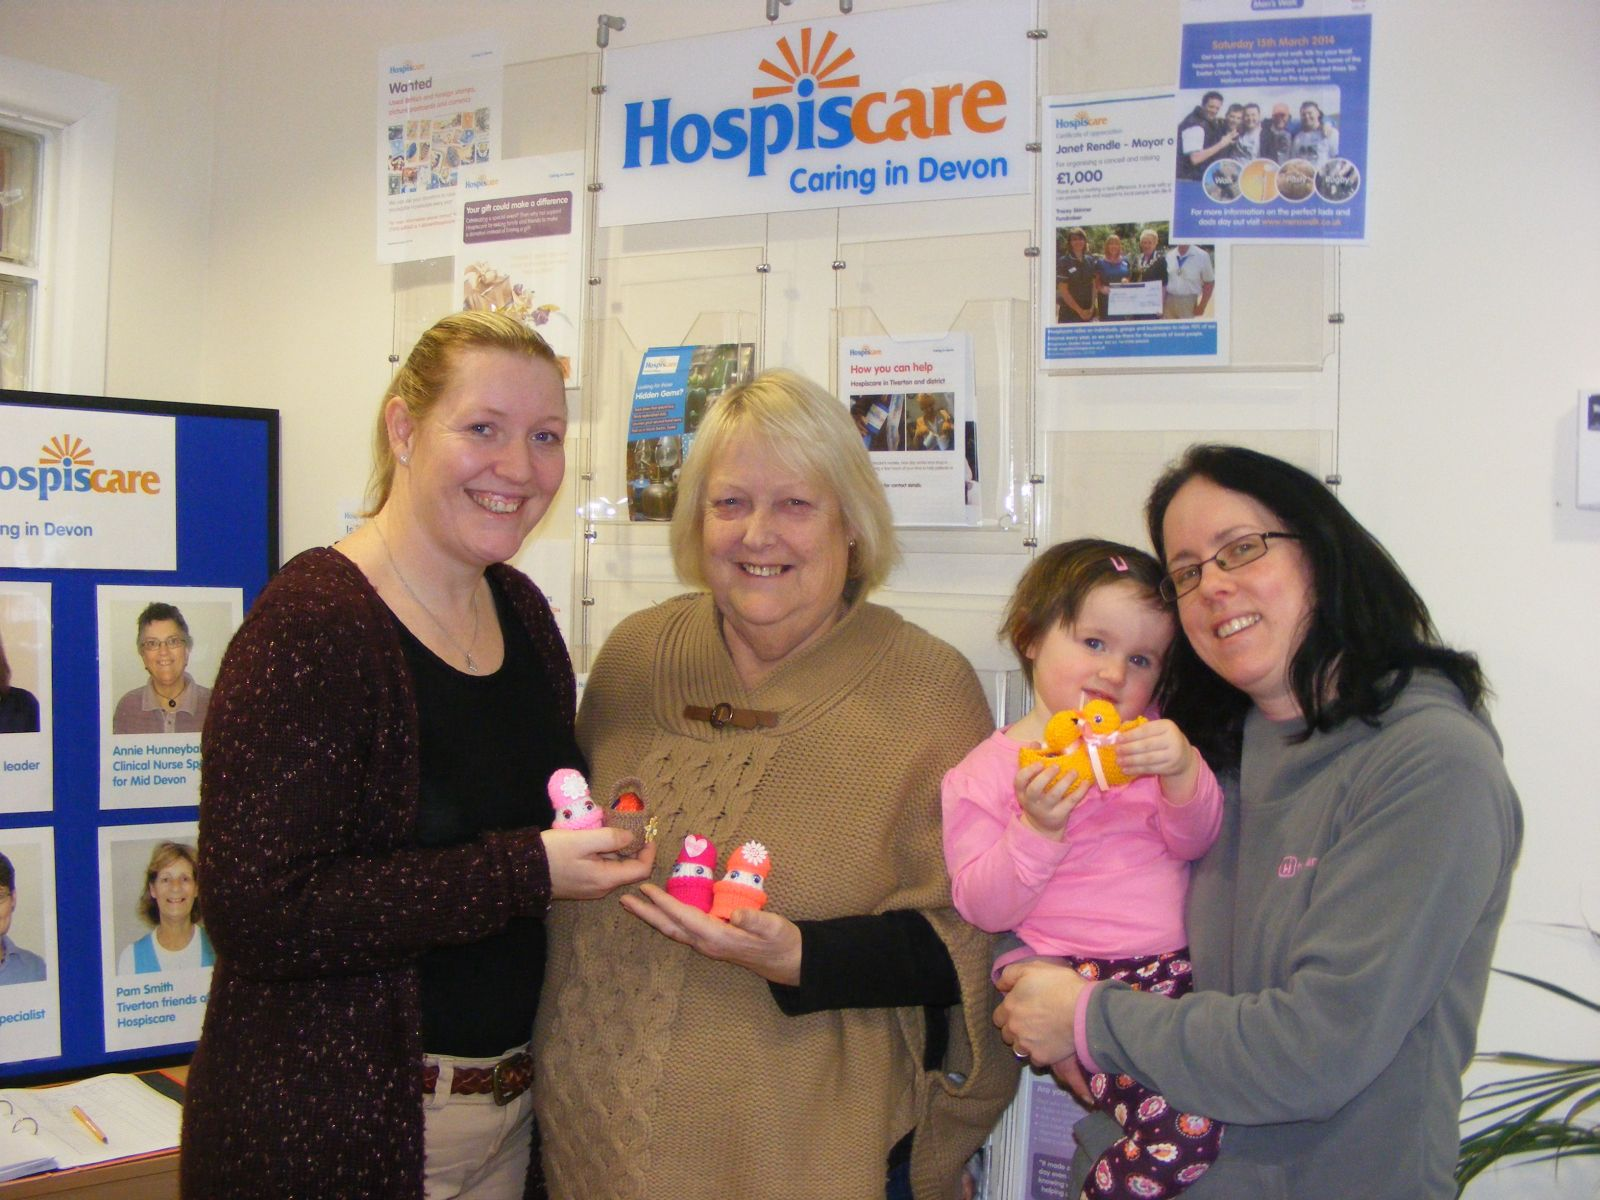 Knitting for Hospiscare